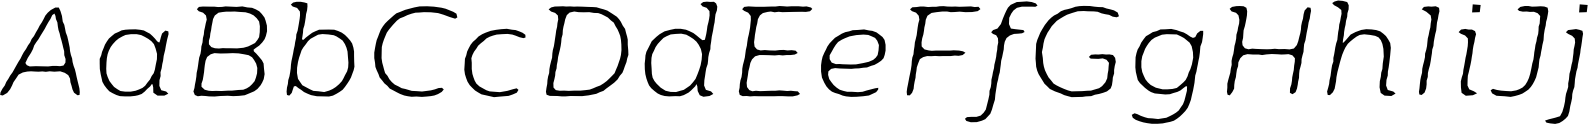 Moreno Rough Two Thin Italic Font